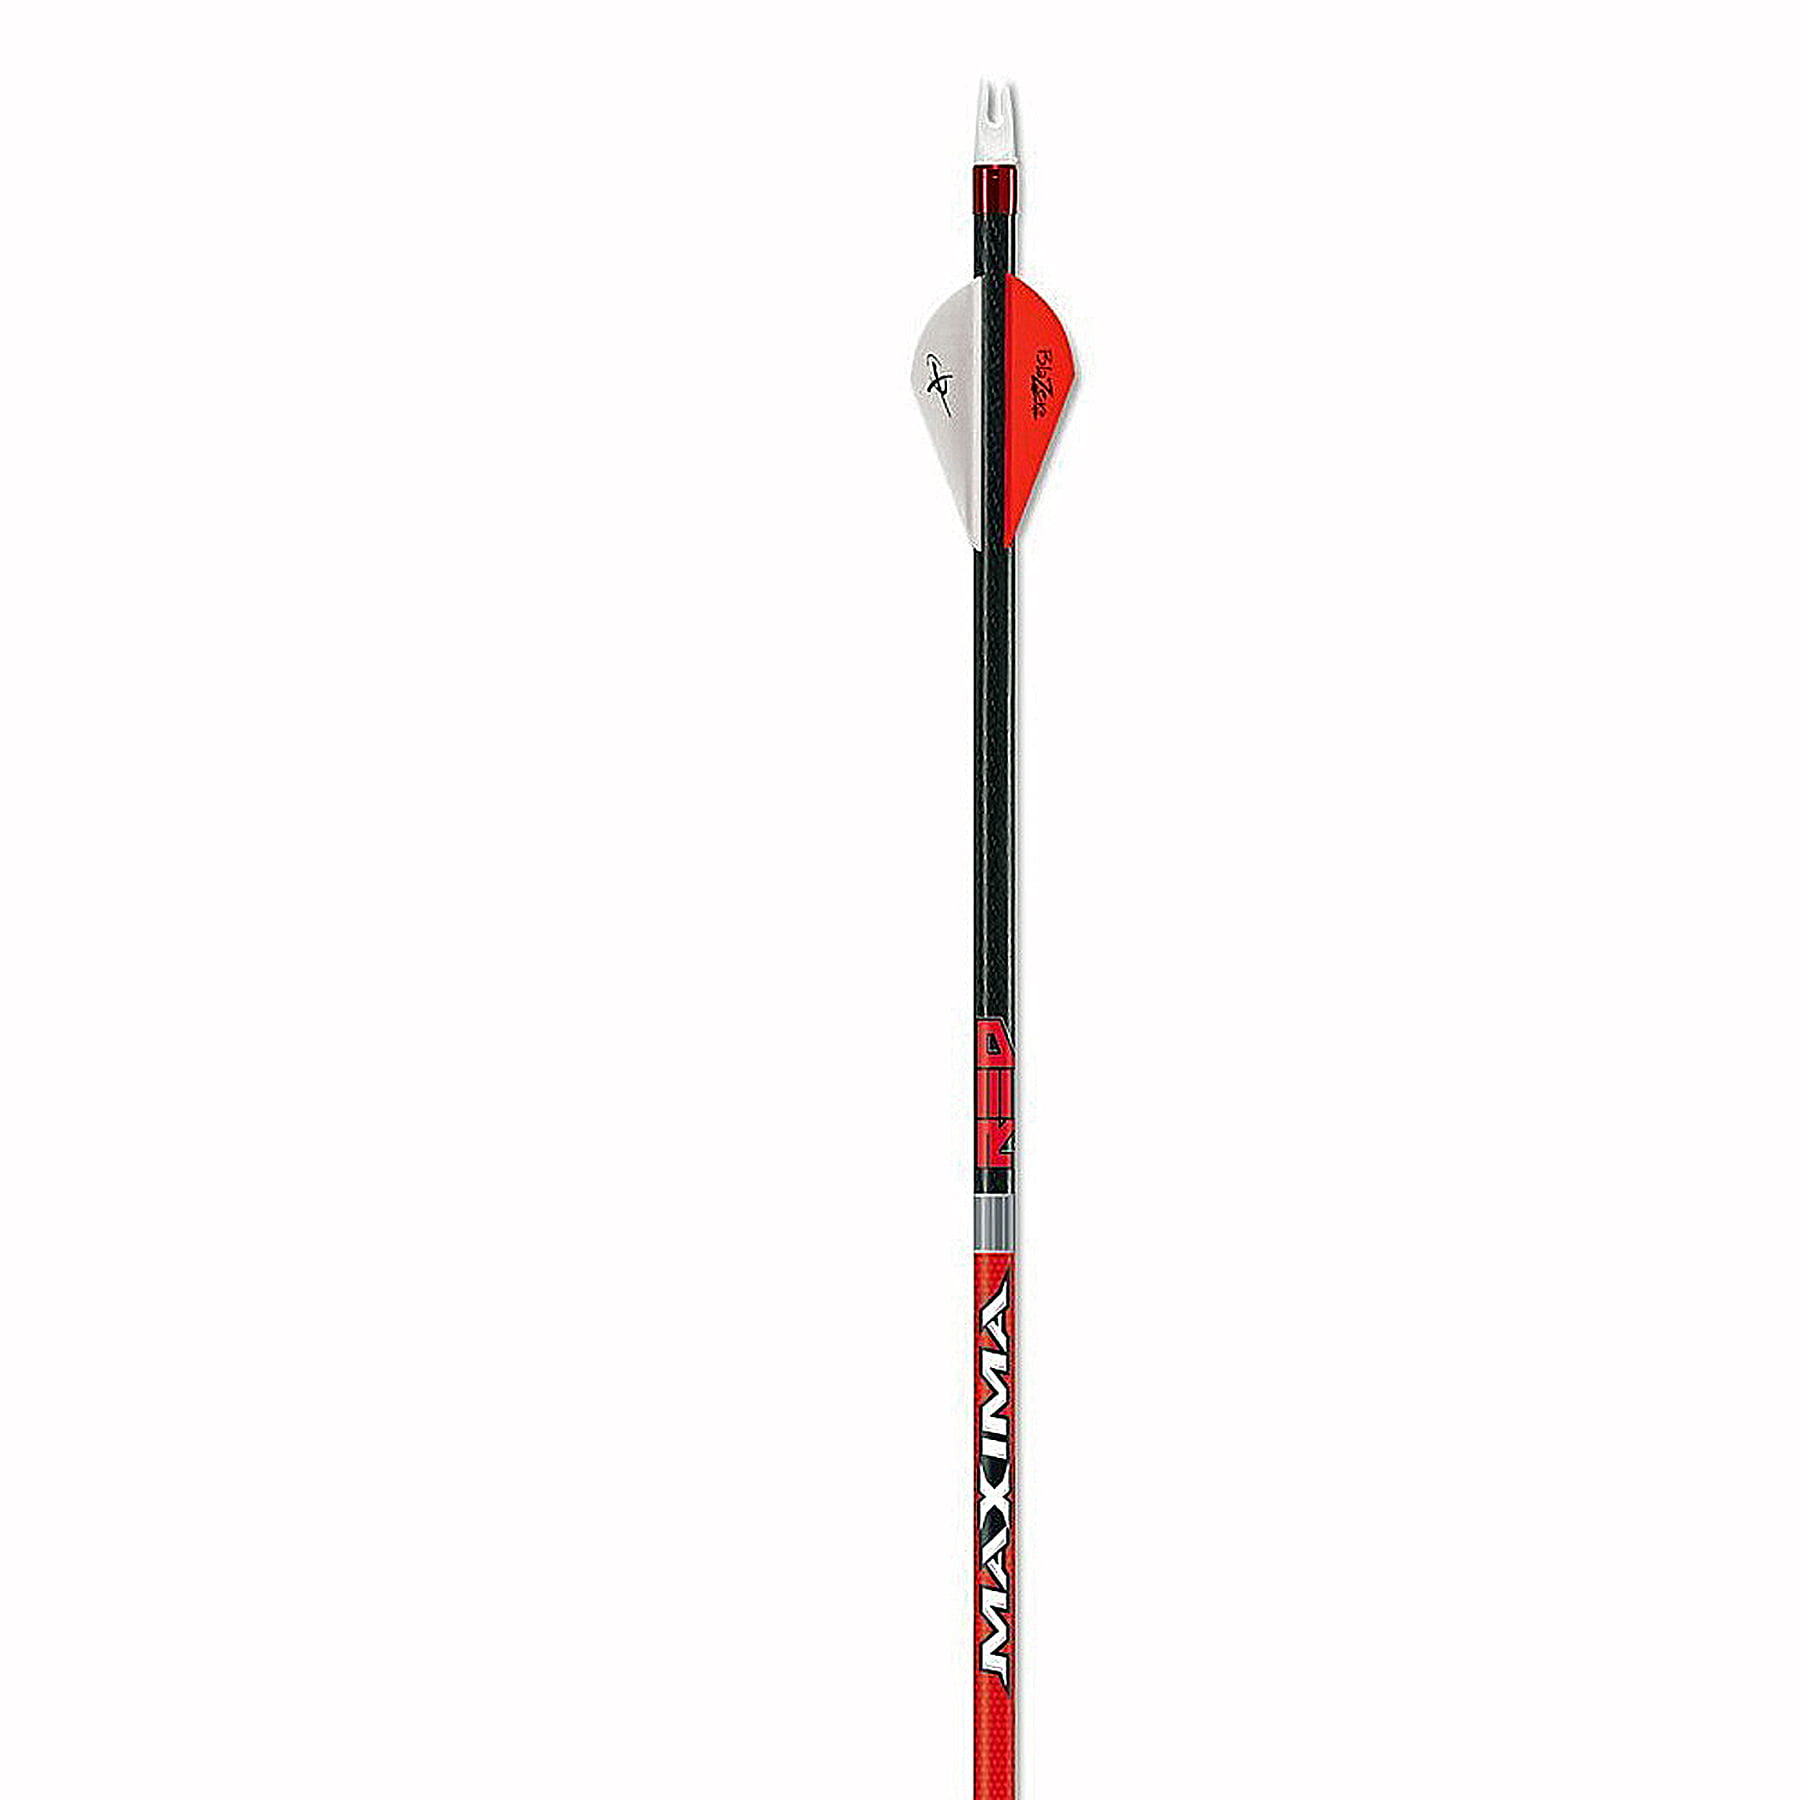 Carbon Express Maxima RED Fletched Carbon Arrows with Dynamic Spine Control and Blazer Vanes 6-Pack